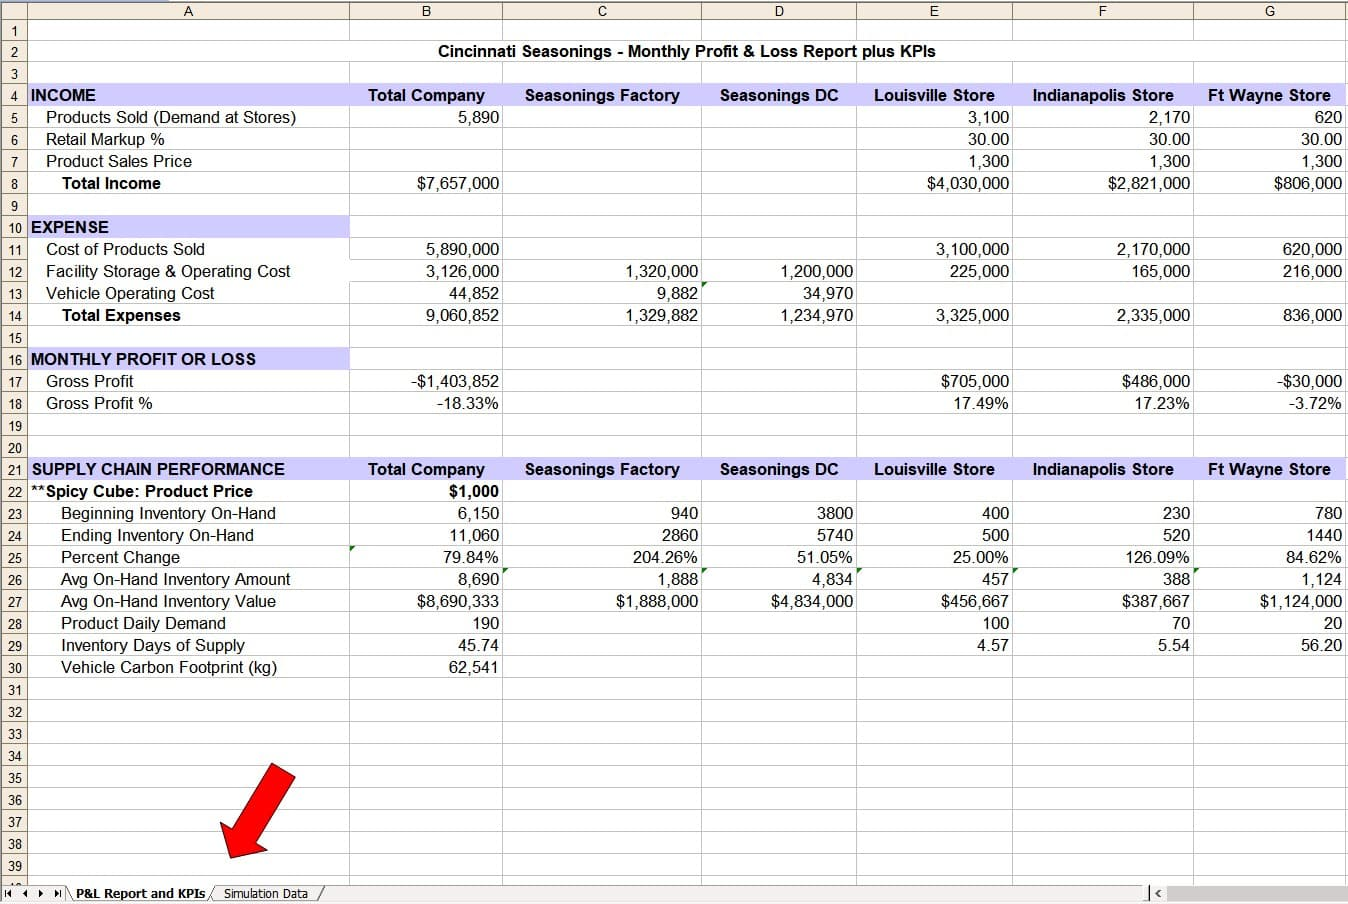 spreadsheet reporting template showing monthly profit and loss for Cincinnati Seasonings